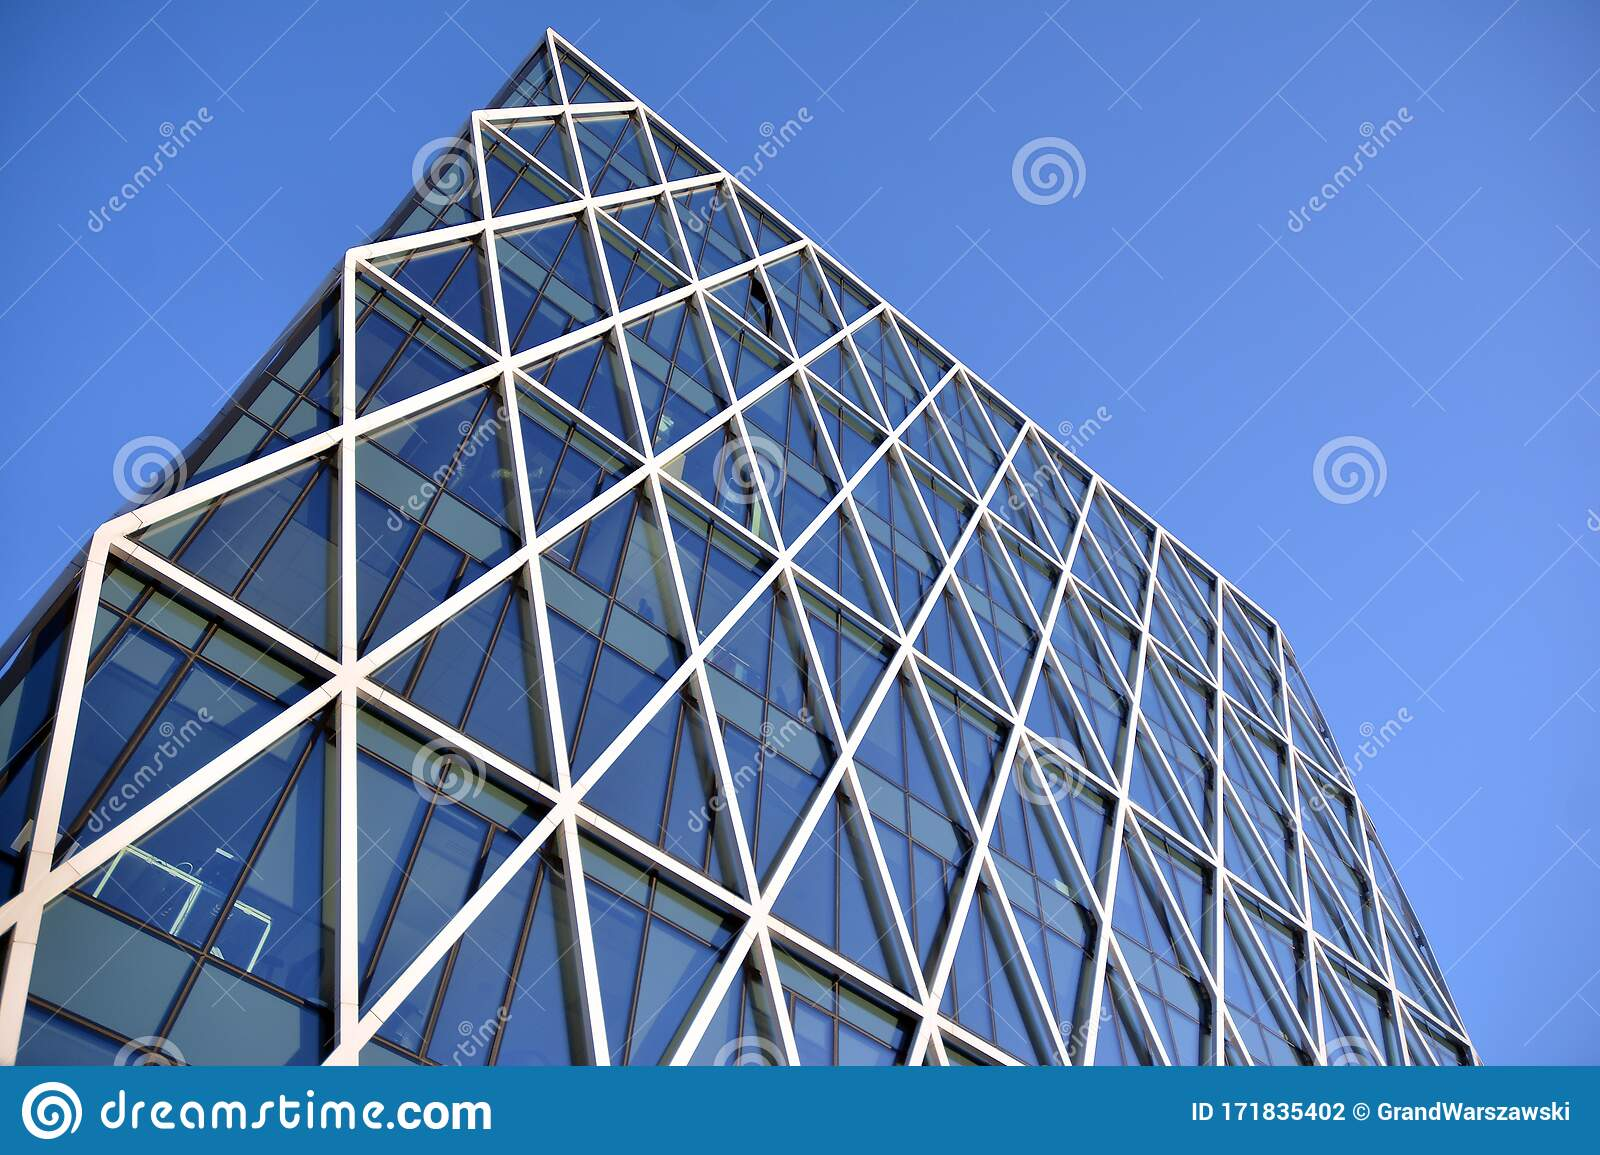 Facade Fragment Of A Modern Office Building Exterior Of Glass Wall With Abstract Texture Stock Photo Image Of Management Design 171835402